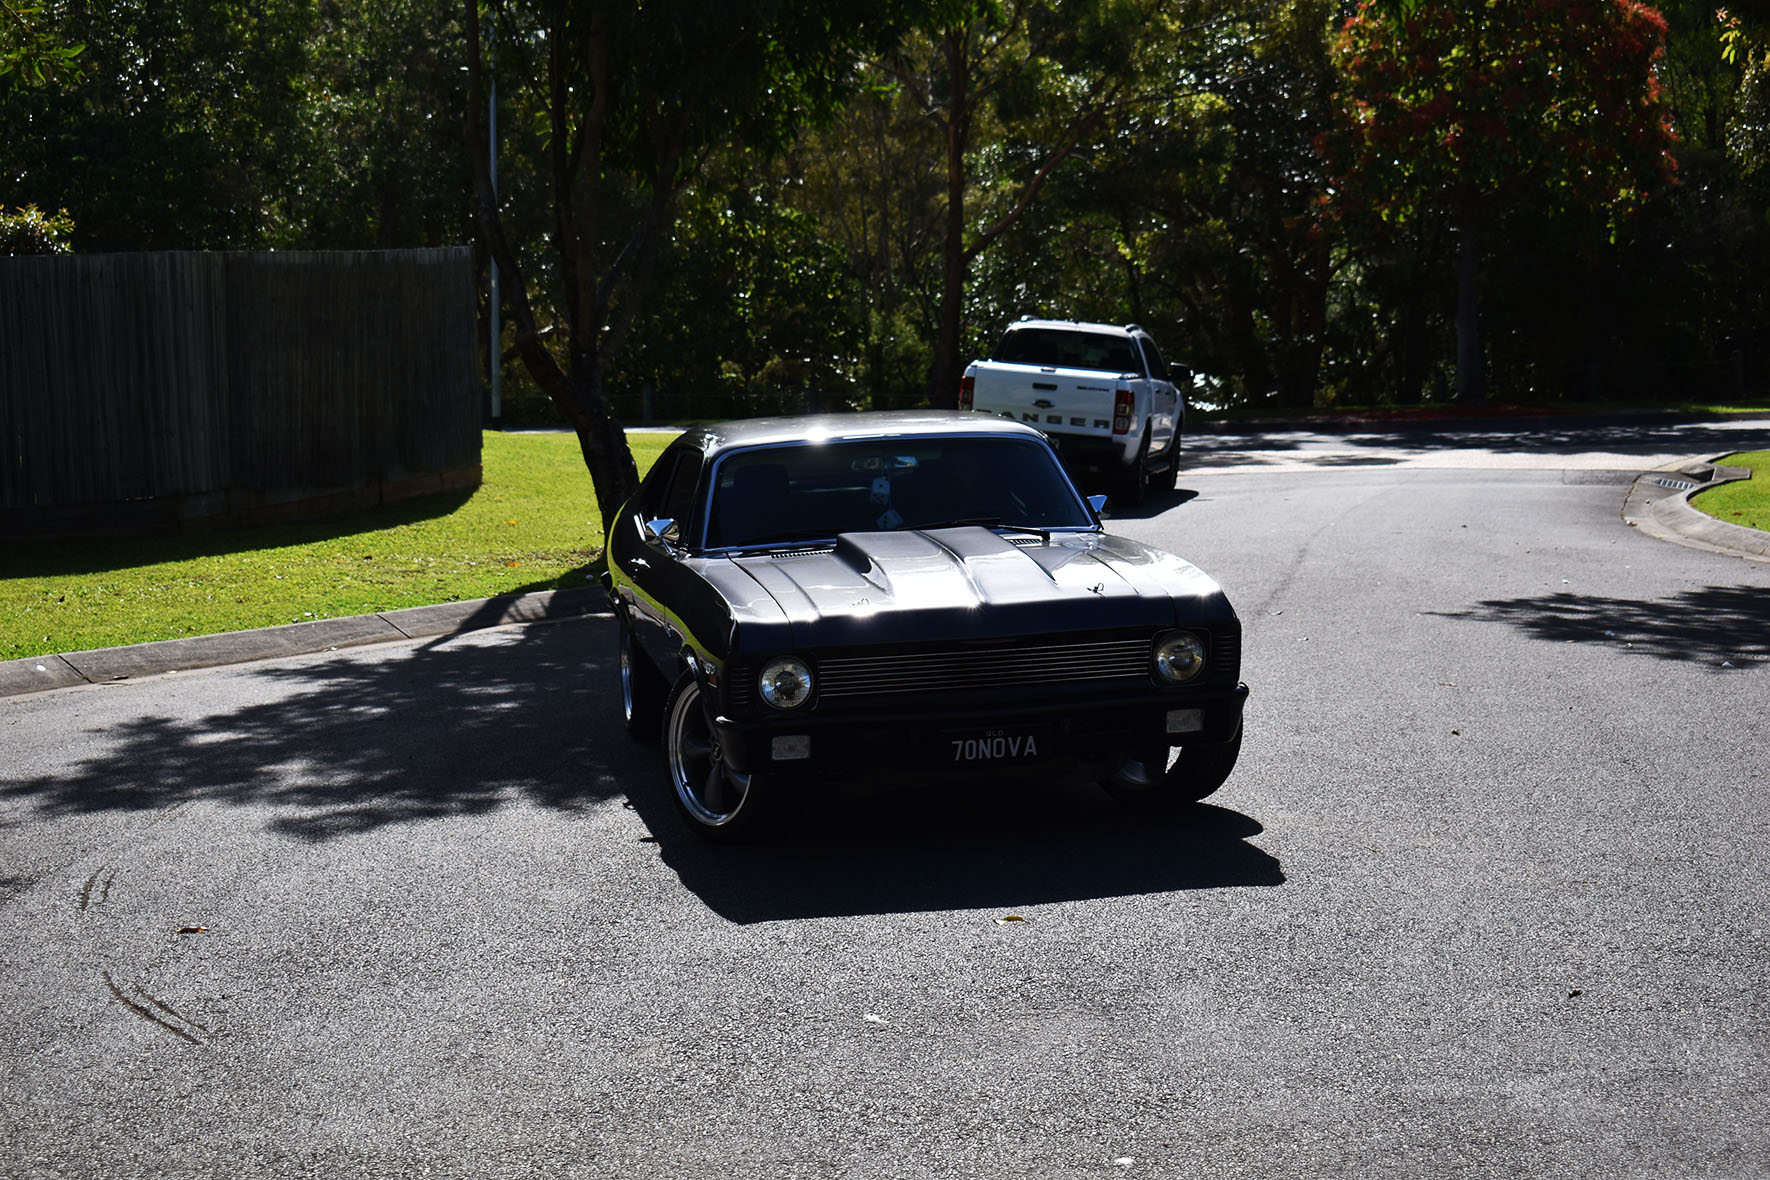 Brisbane Best Car Paint Protection and Ceramic Coating 9